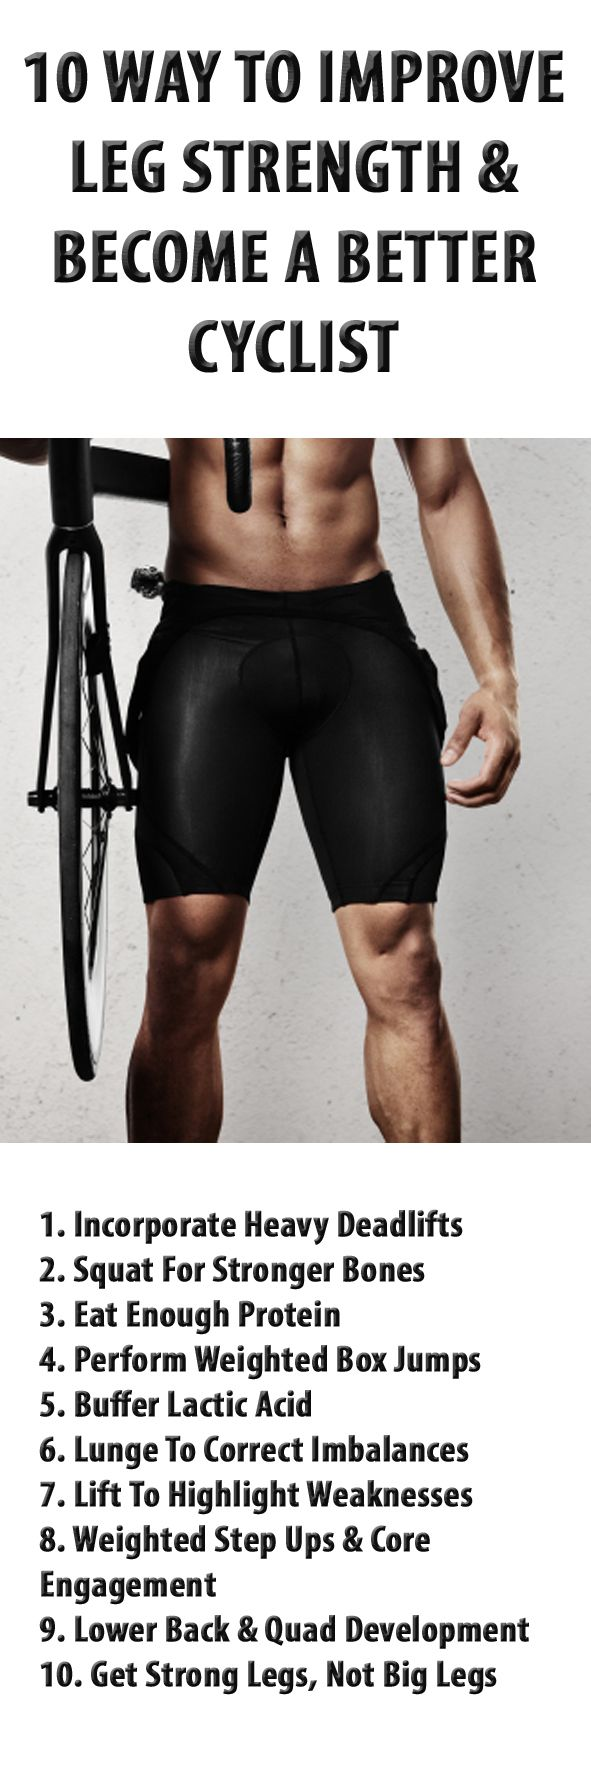 10 ways to improve leg strength in general, not just for cyclists.